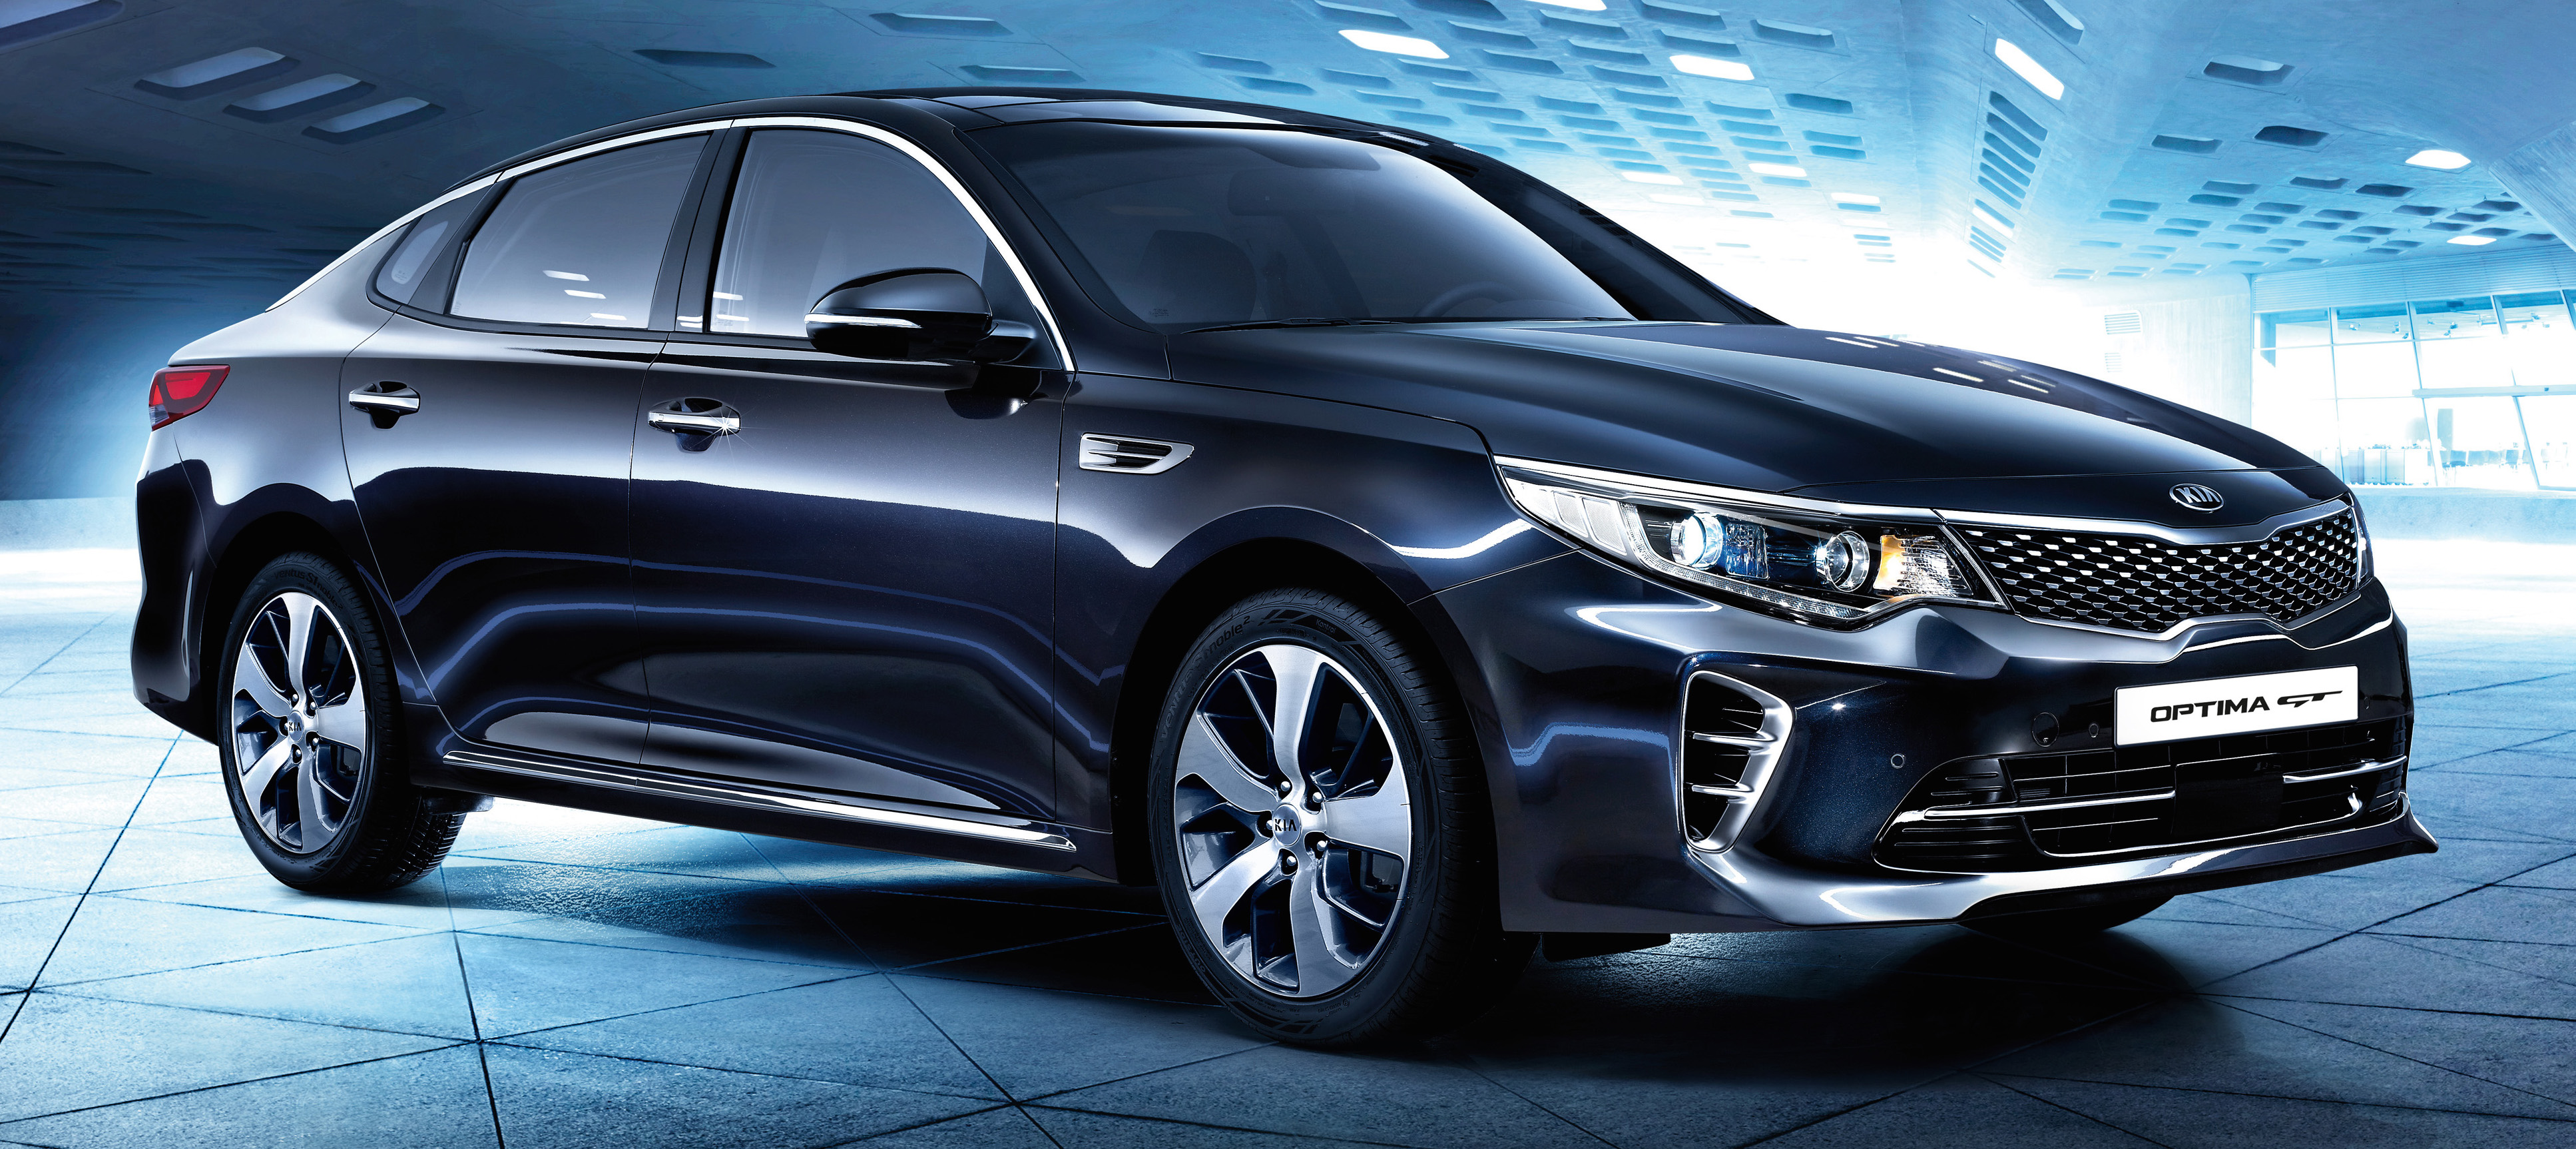 kia optima gt coming to malaysia in 2017 2 0l turbo. Black Bedroom Furniture Sets. Home Design Ideas